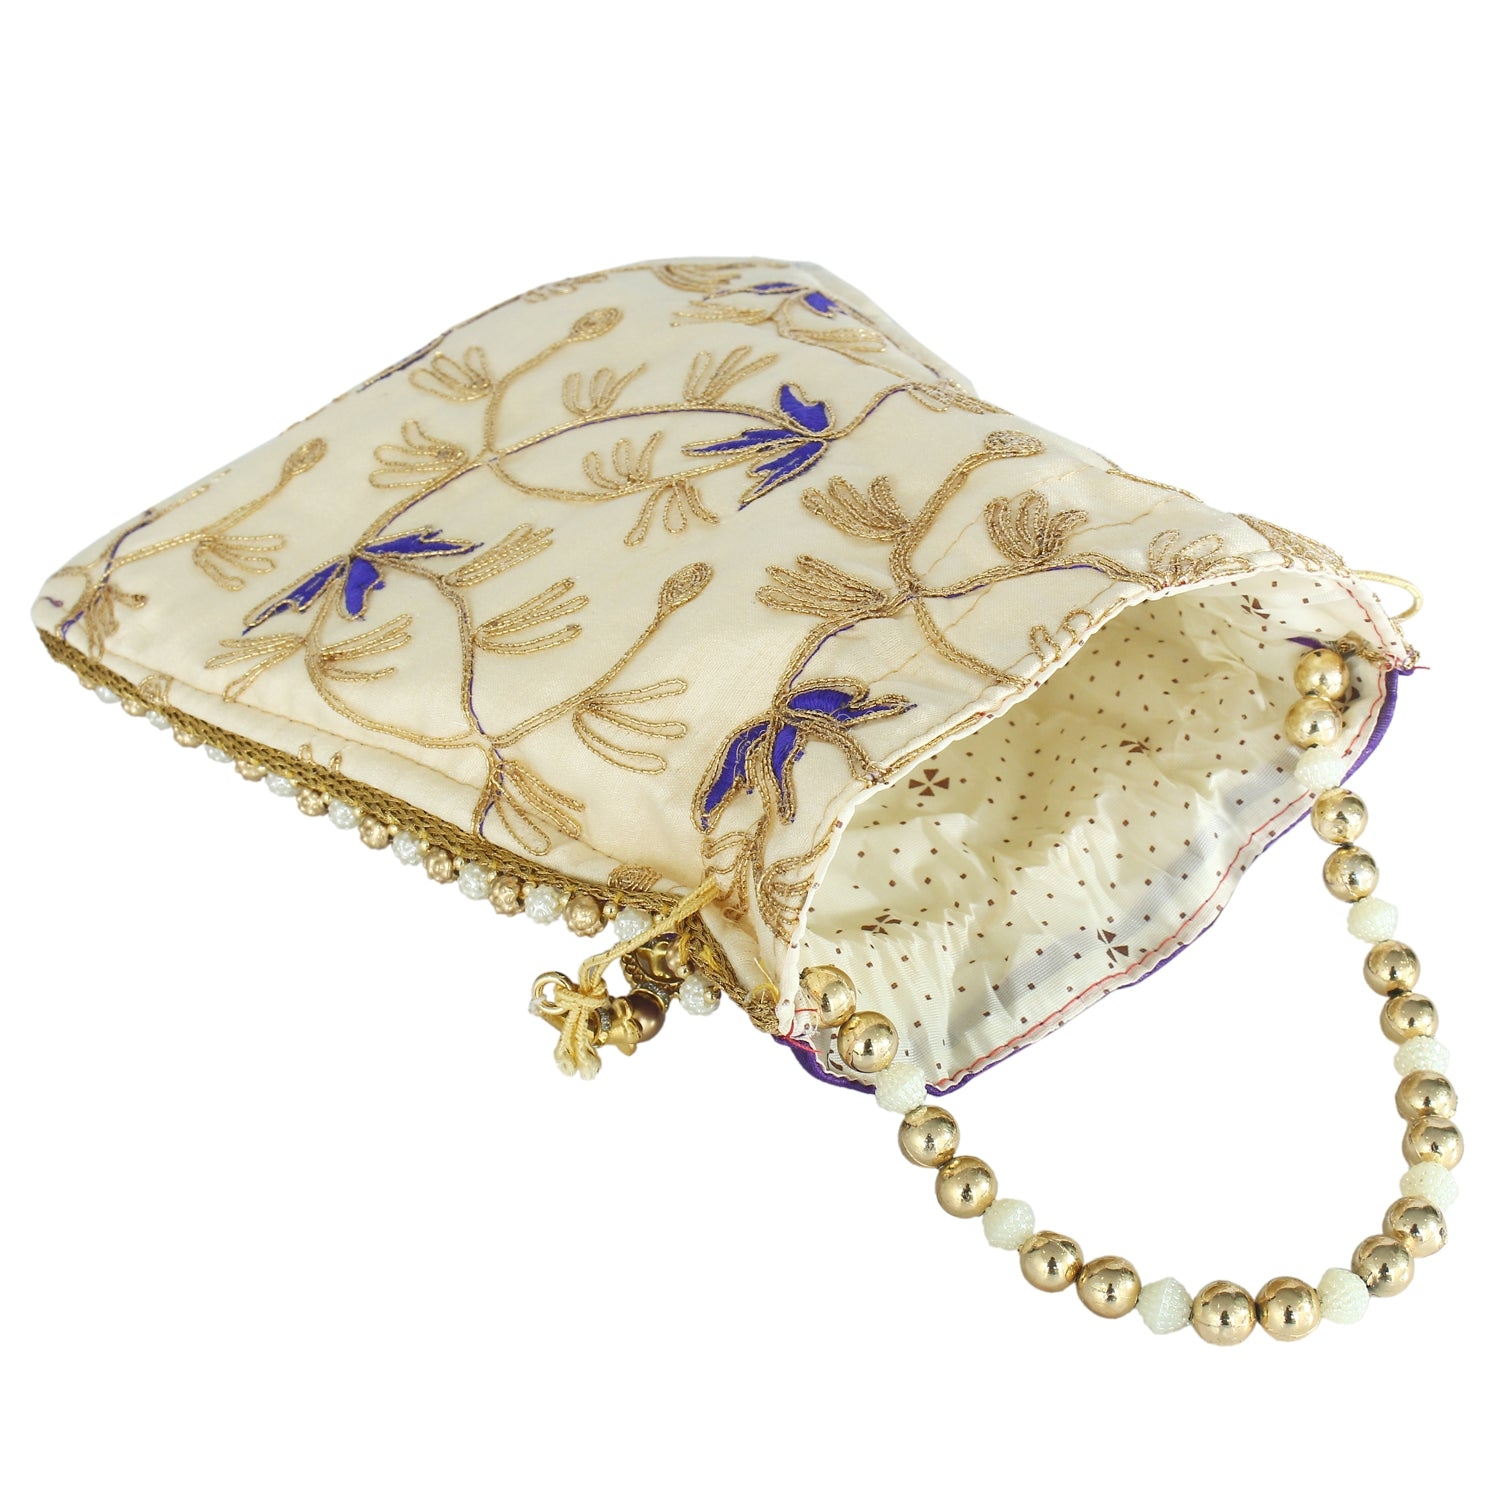 Ethnic Silk Potli Batwa Pouch Bag with Embroidery work (Purple) - Bagaholics Gift